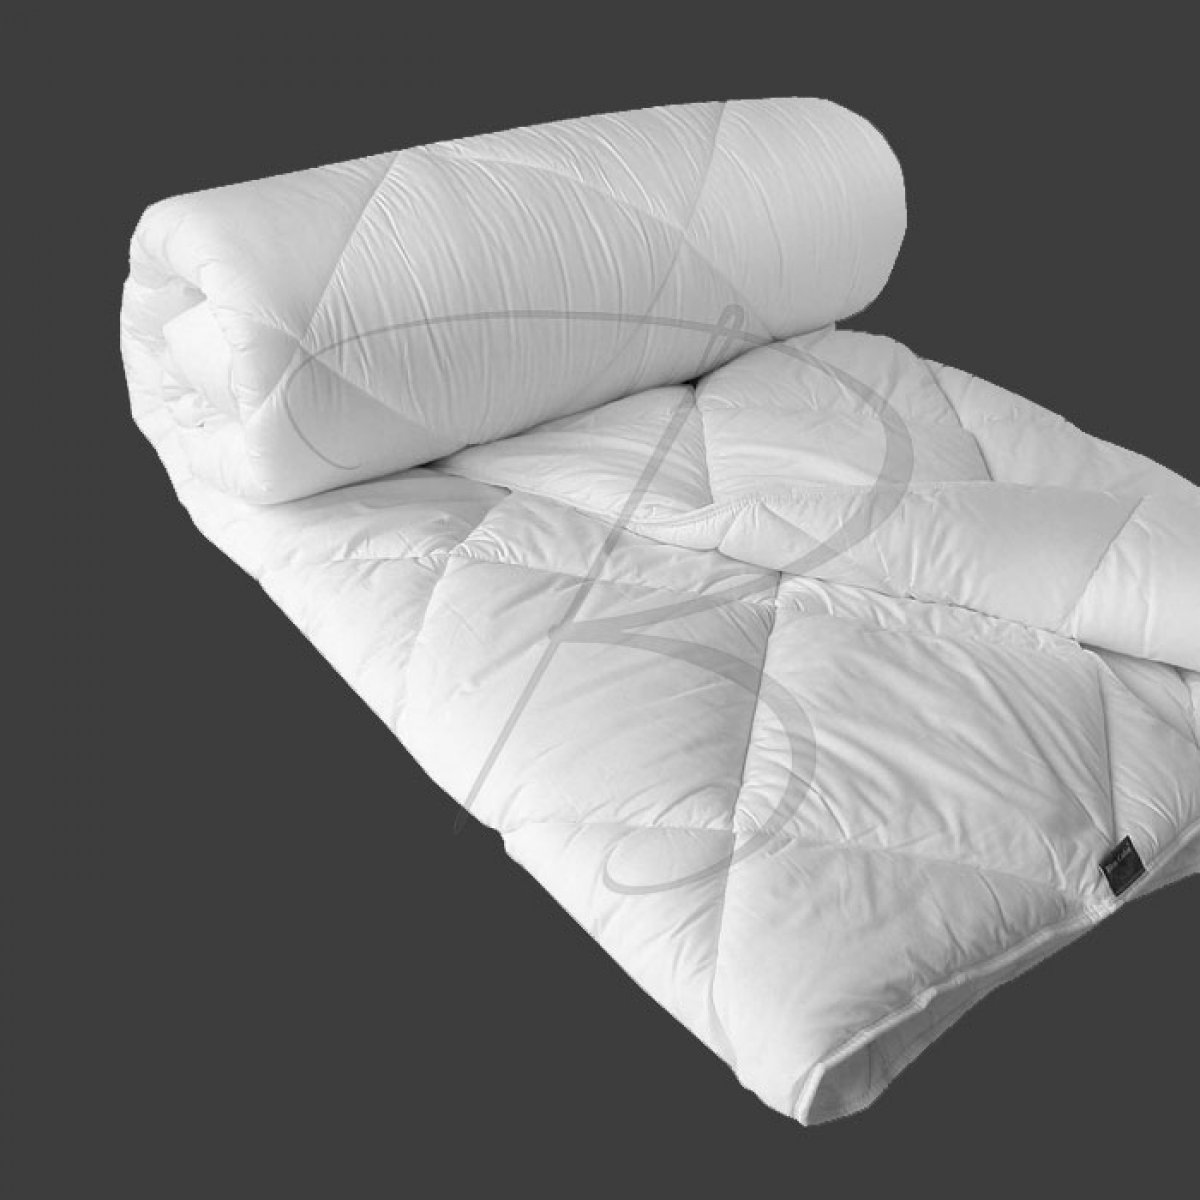 Pyrenees synthetic comforter - 350g/m² - 260 x 240